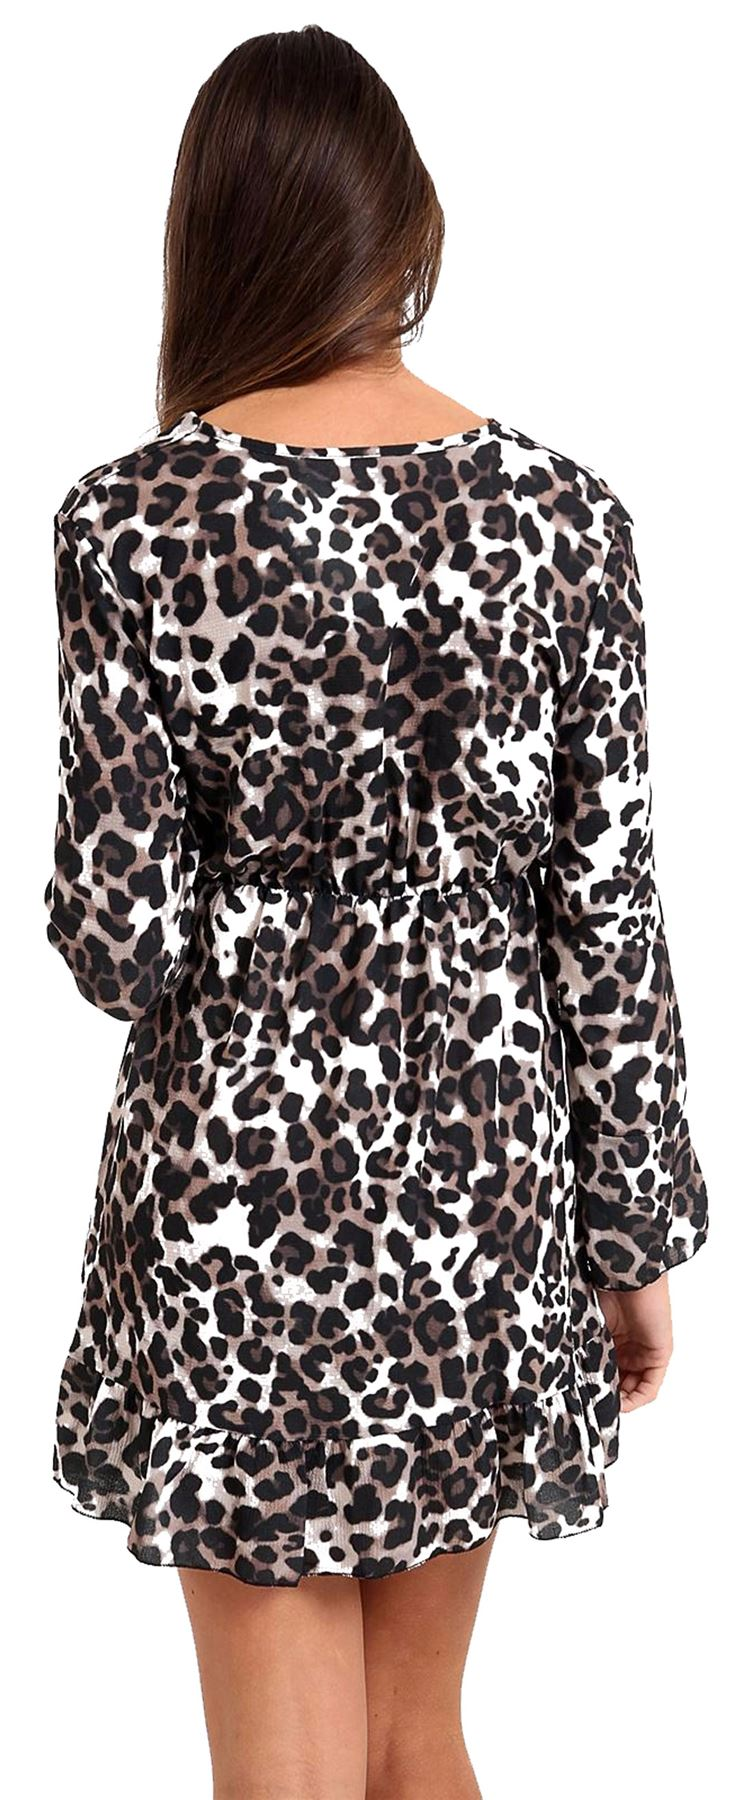 b47c8bbe32f6f Details about Womens Leopard Print Wrap Over Dress Ladies Plunged Bell  Sleeve Party Shirt LOT